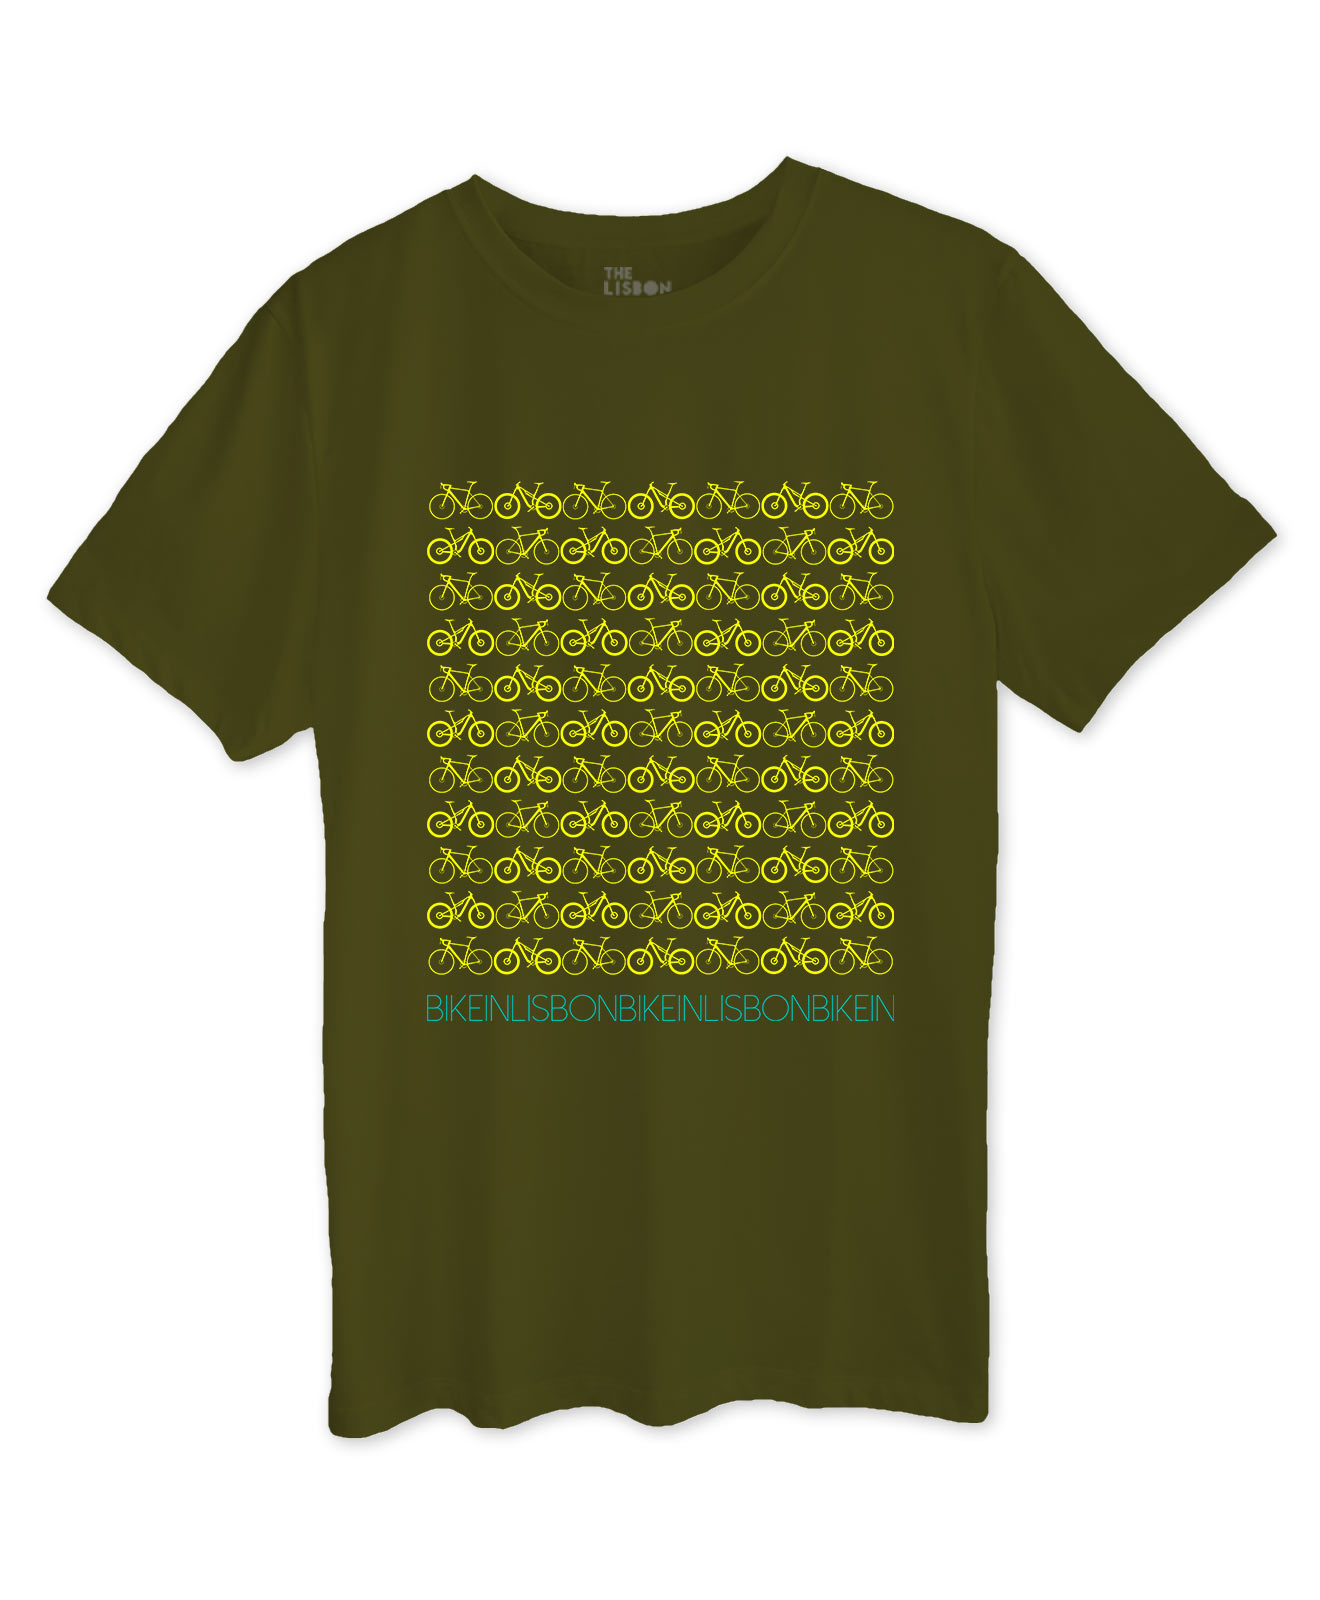 Bike in Lisbon Khaki T-shirt yellow printing